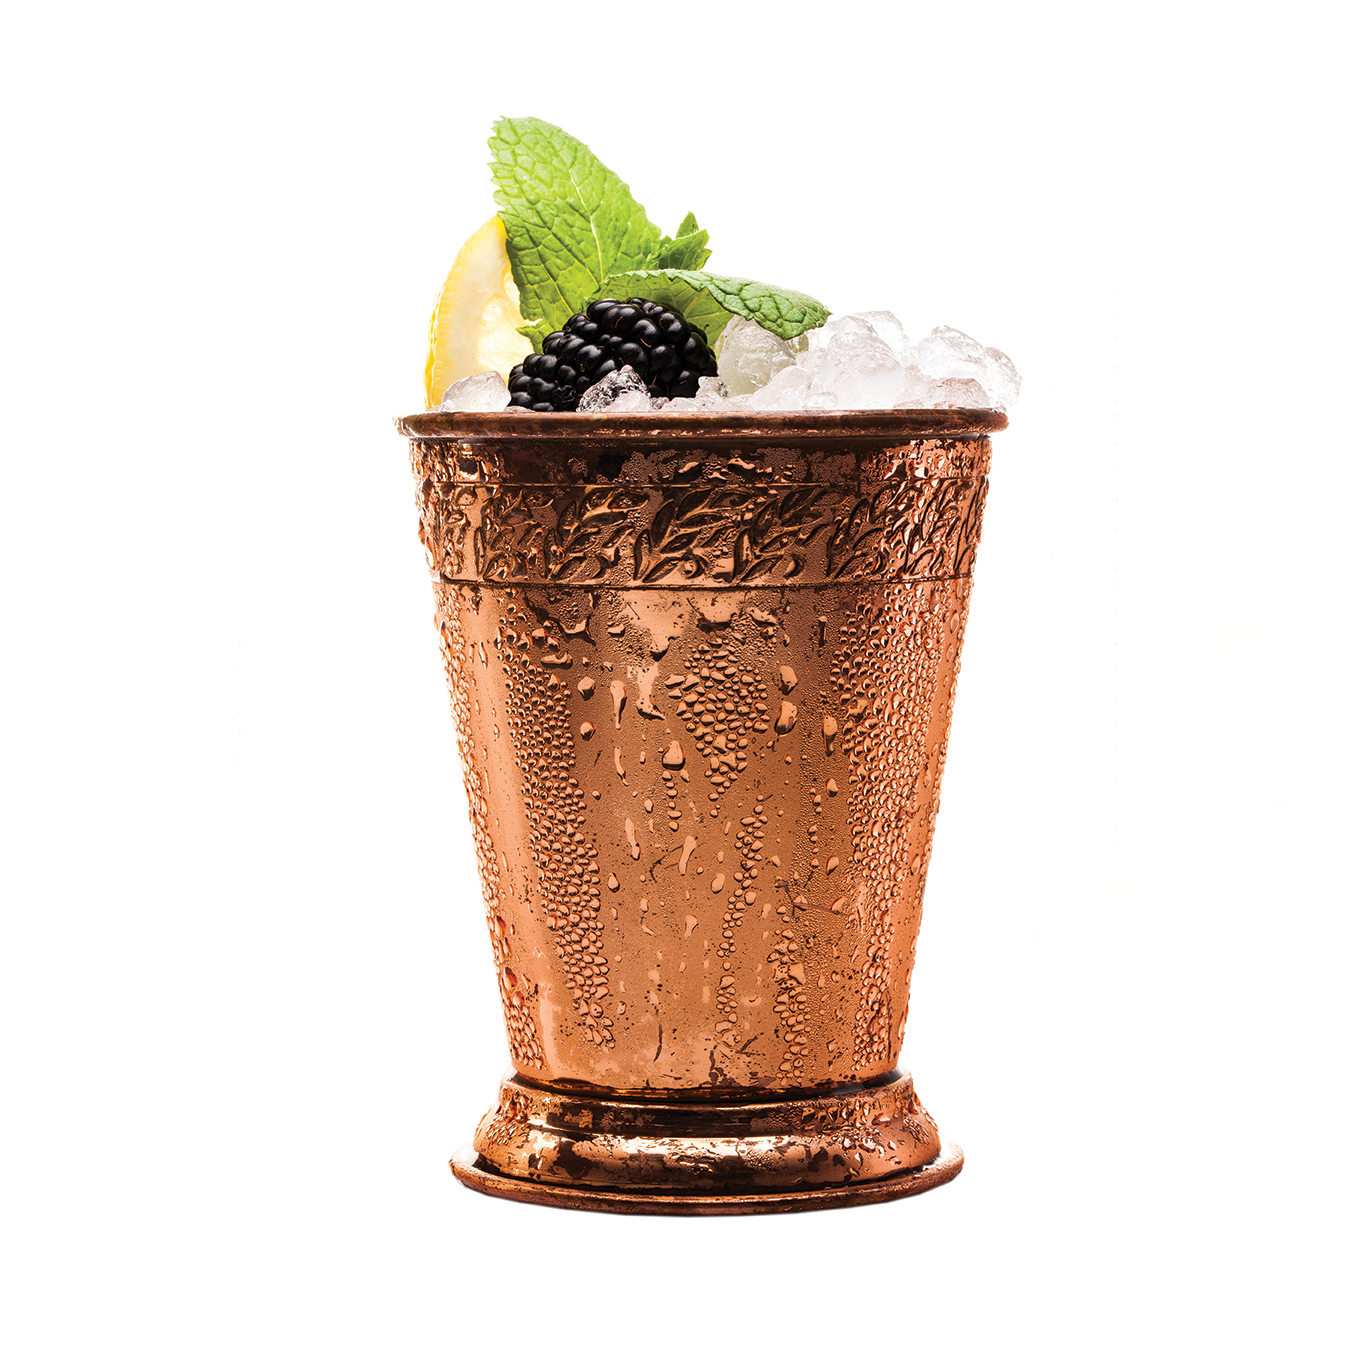 THE GREEKER THE BERRY - 1 part KLEOS Mastiha Spirit1 part cognac3⁄4 part fresh lemon juice1⁄4 part simple syrupOrange wedge (no skin)2 blackberries  Muddle orange wedge and blackberries.Shake all ingredients vigorously.Strain over crushed ice in a copper tin or rocks glass.Garnish with a mint sprig, blackberry, and lemon wheel.       We pour out a little liquor for rapper Tupac, whose lyrical lyricism was that of the bards of Greek poetry.Shout out to one of favorite Miami cocktail bars, Sweet Liberty (@sweetlibertymia) for lending us this badass glassware. #hospitality